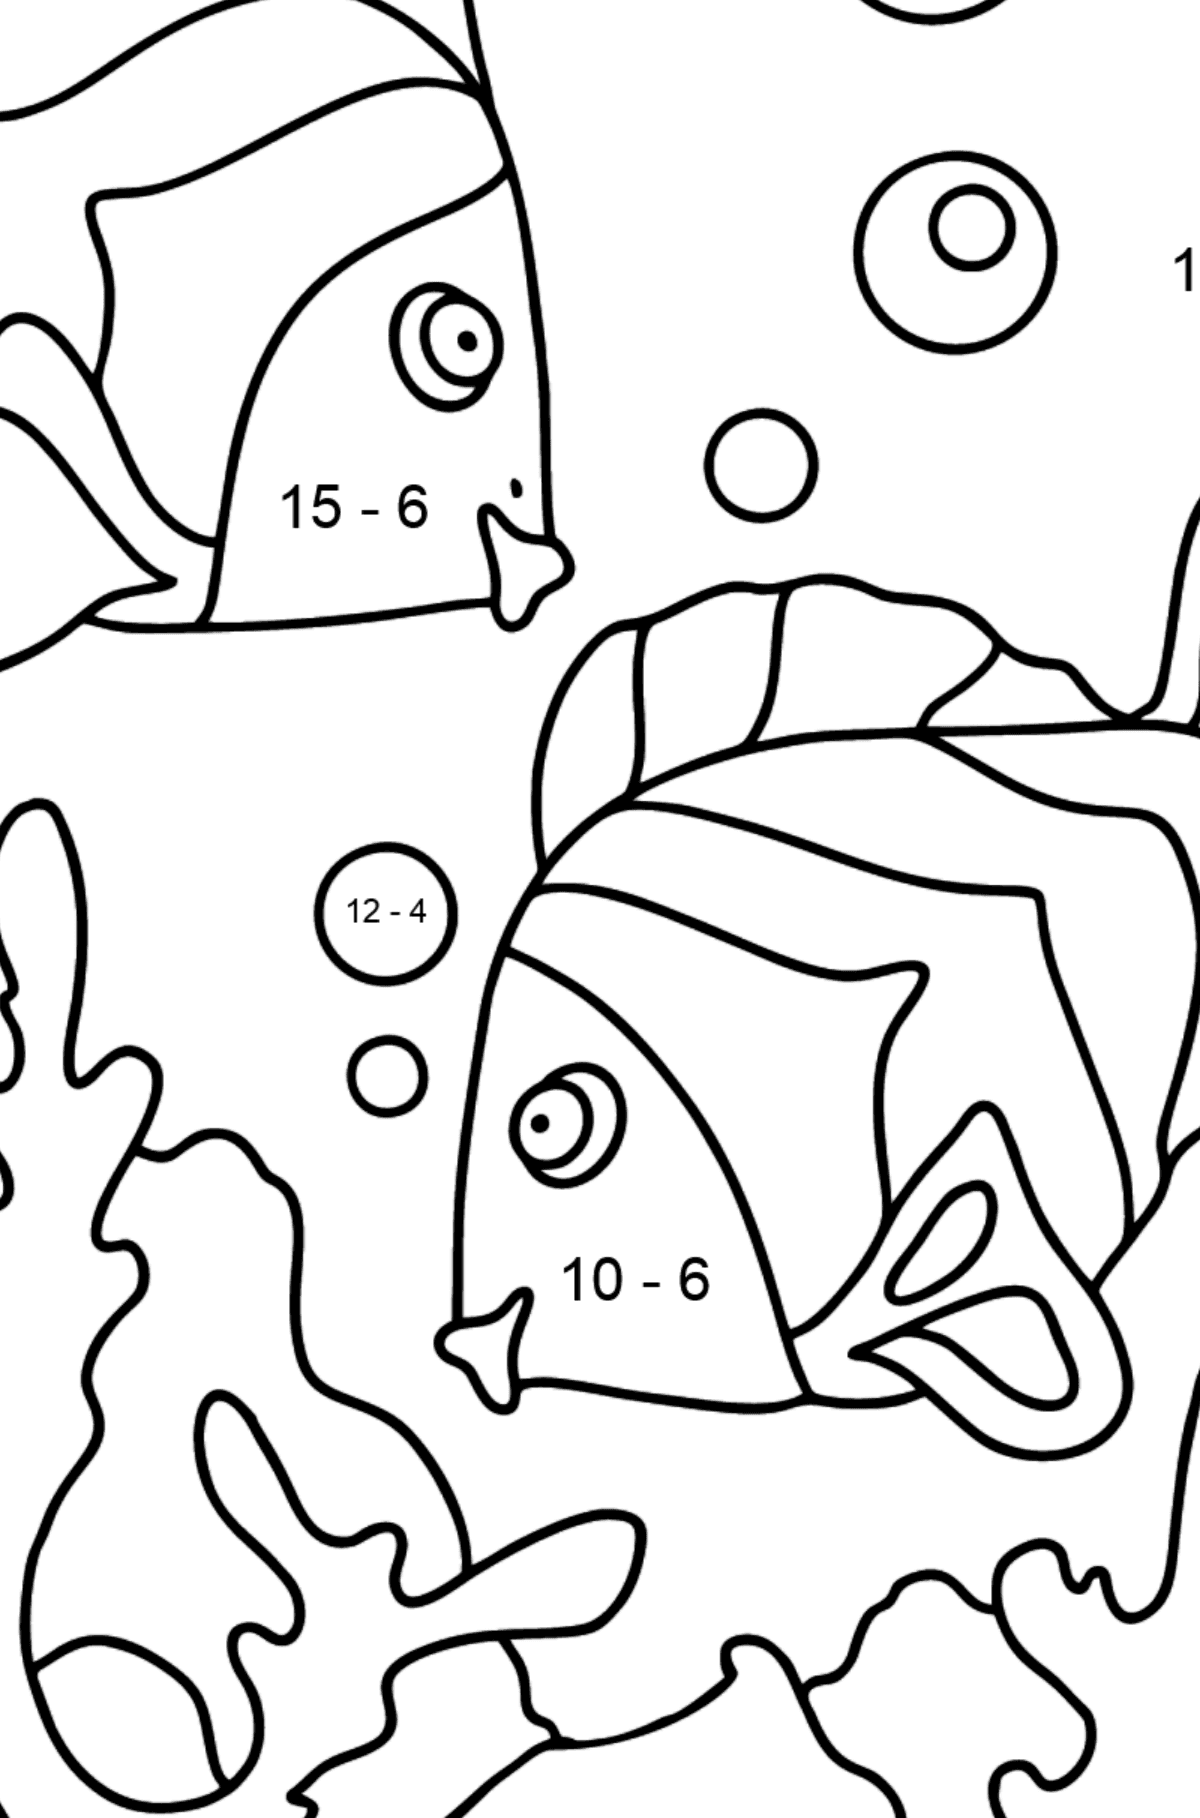 Coloring Page - Fish are Playing Happily - Math Coloring - Subtraction for Kids